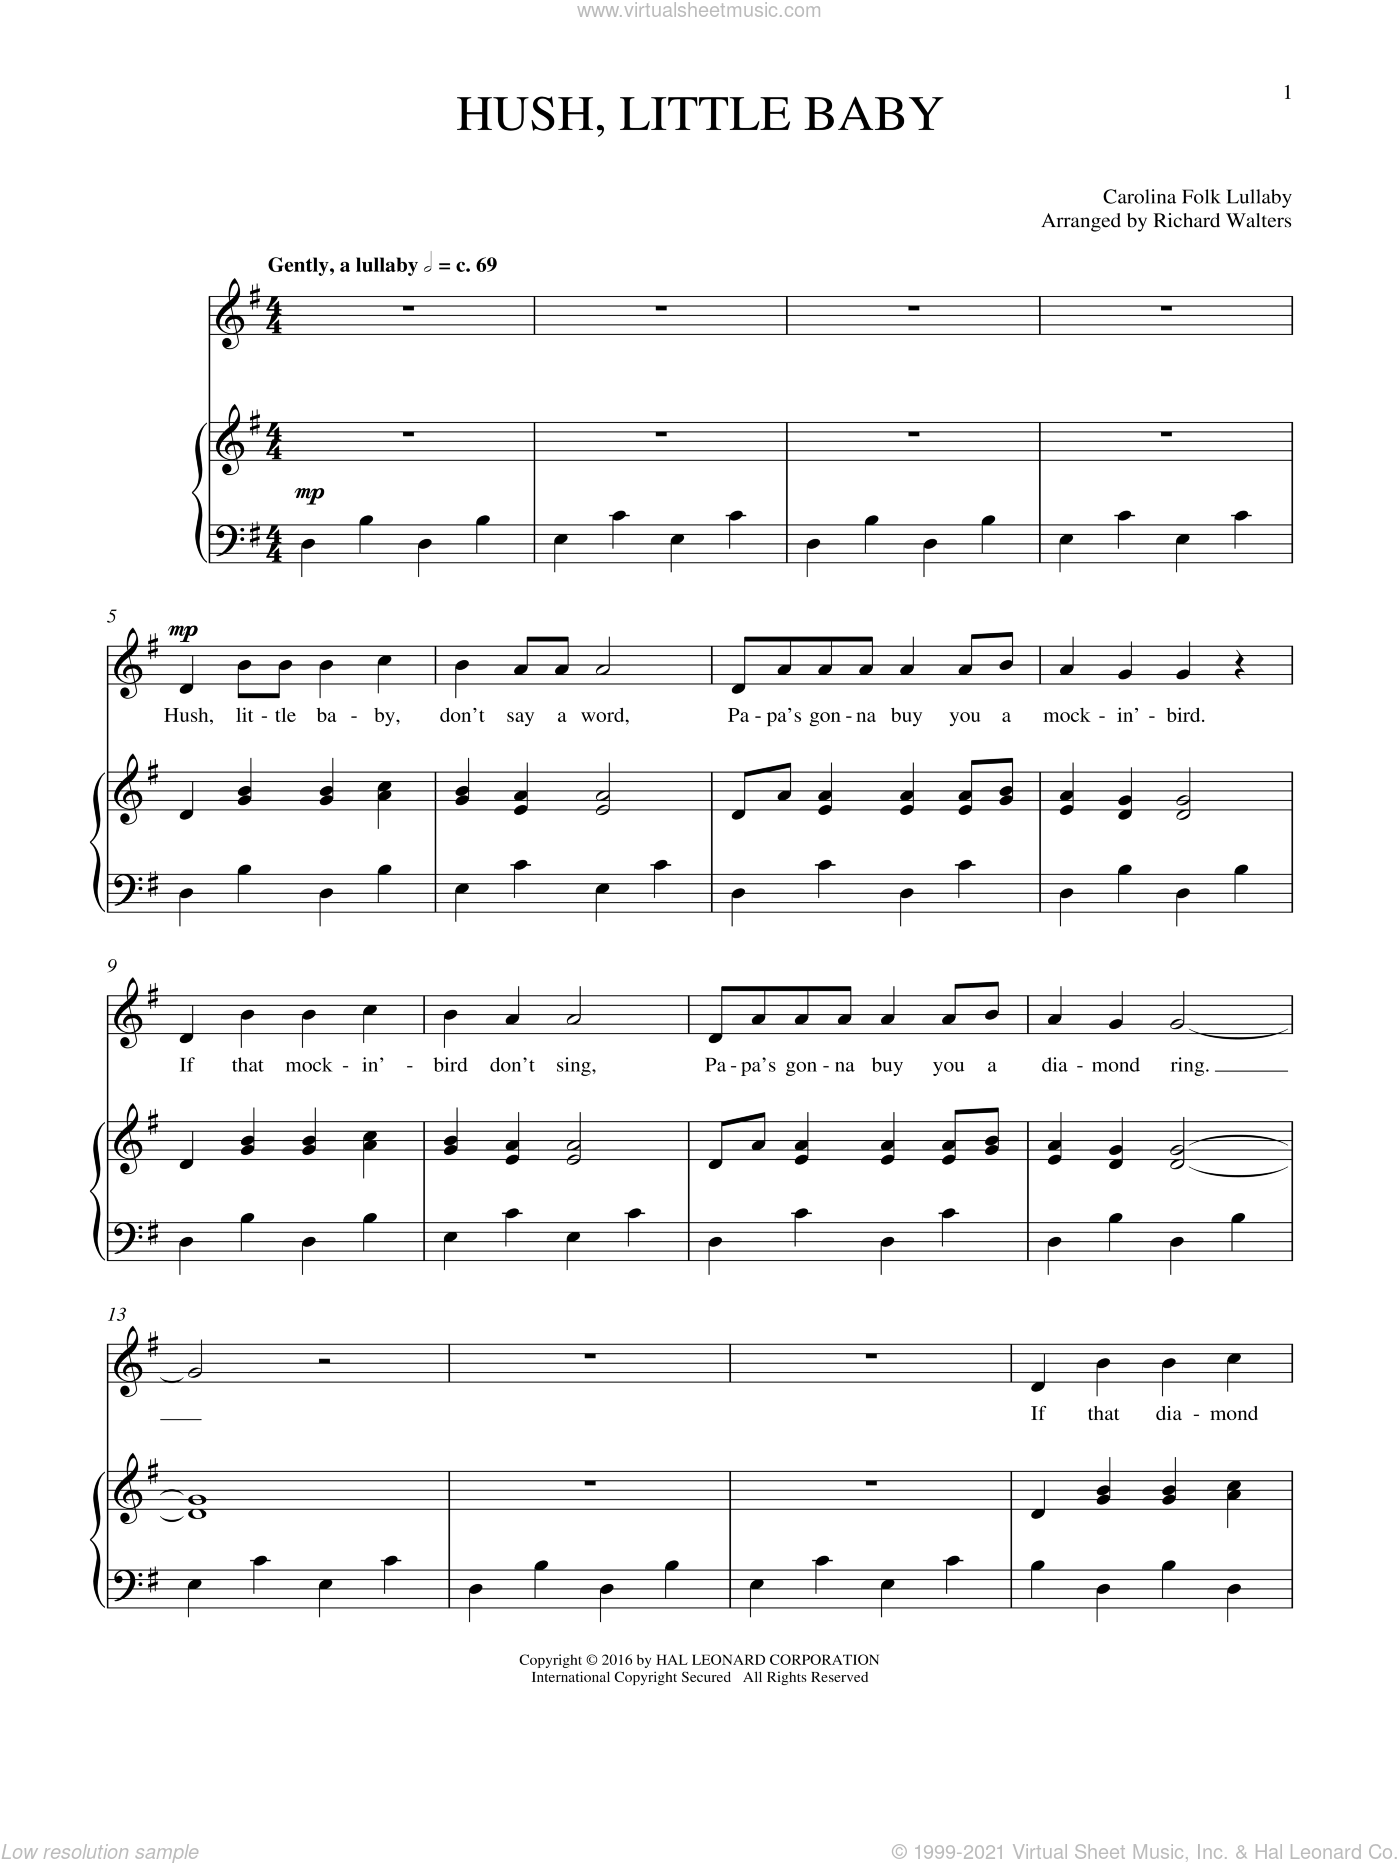 Hush, Little Baby sheet music for voice and piano by Carolina Folk Lullaby, intermediate skill level